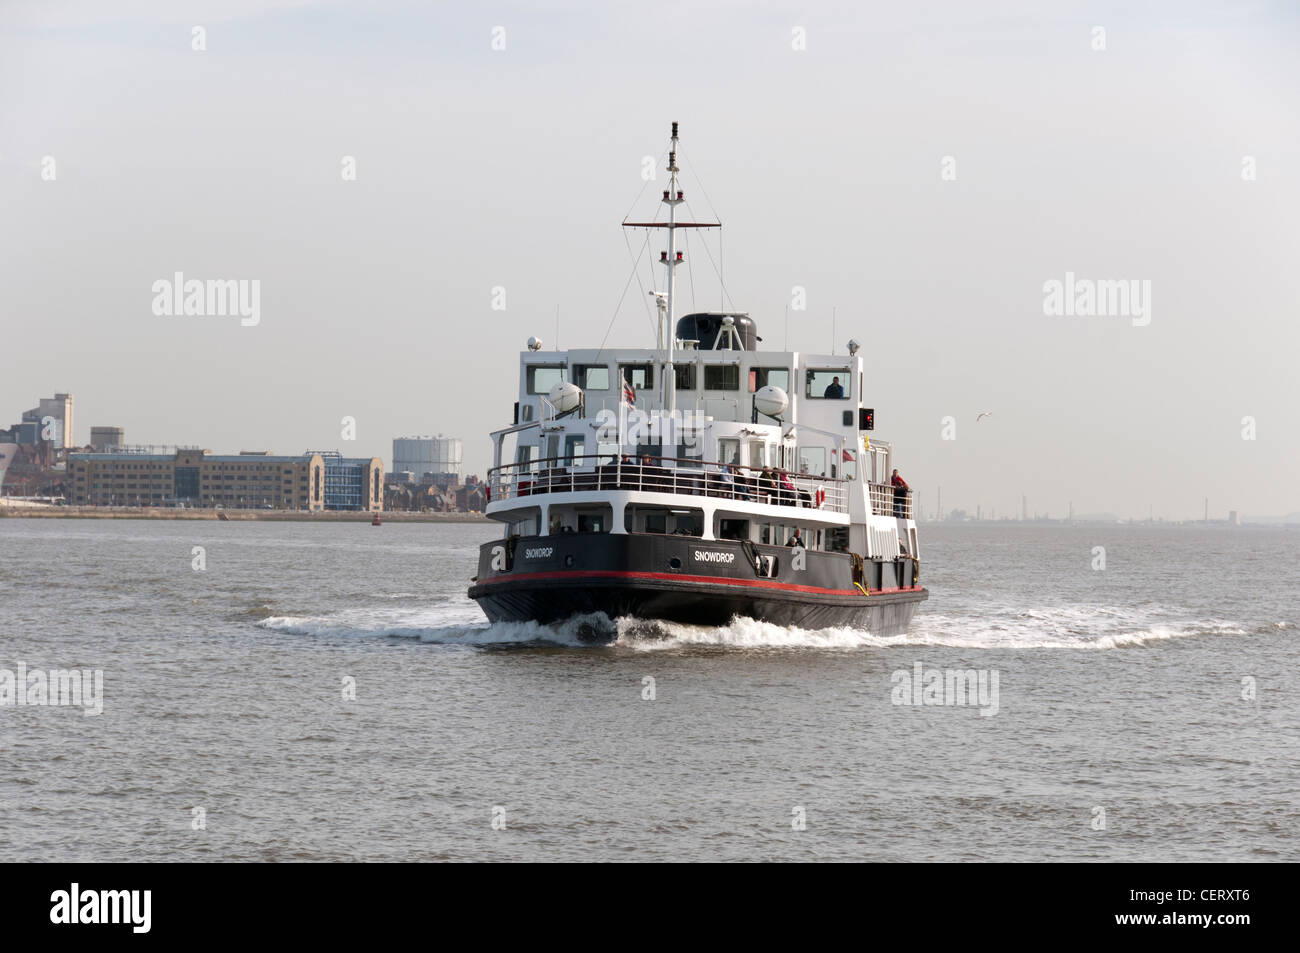 Mersey Ferry crossing the river from Liverpool - Stock Image